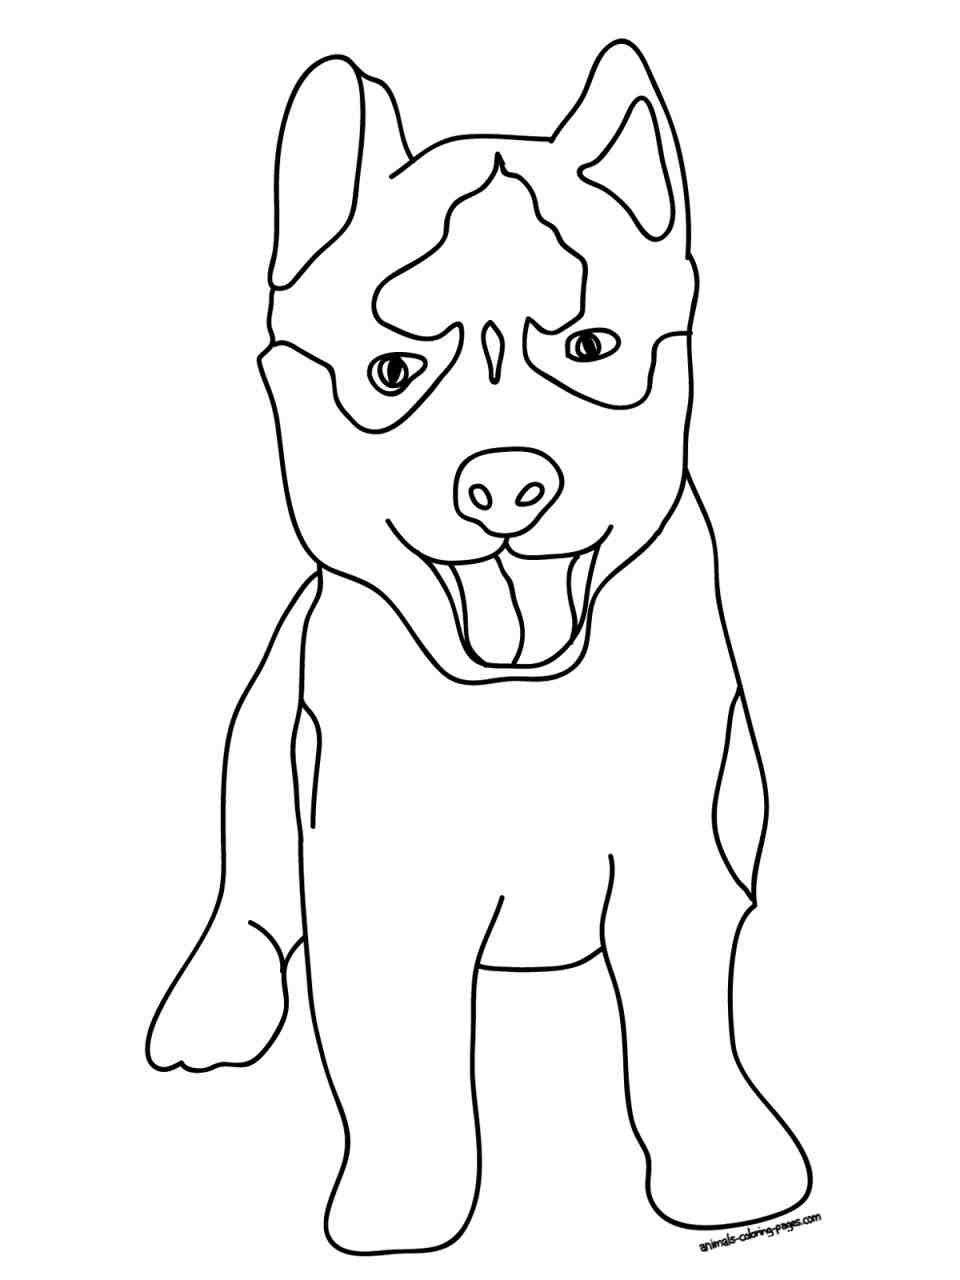 Pitbull Puppies Coloring Pages